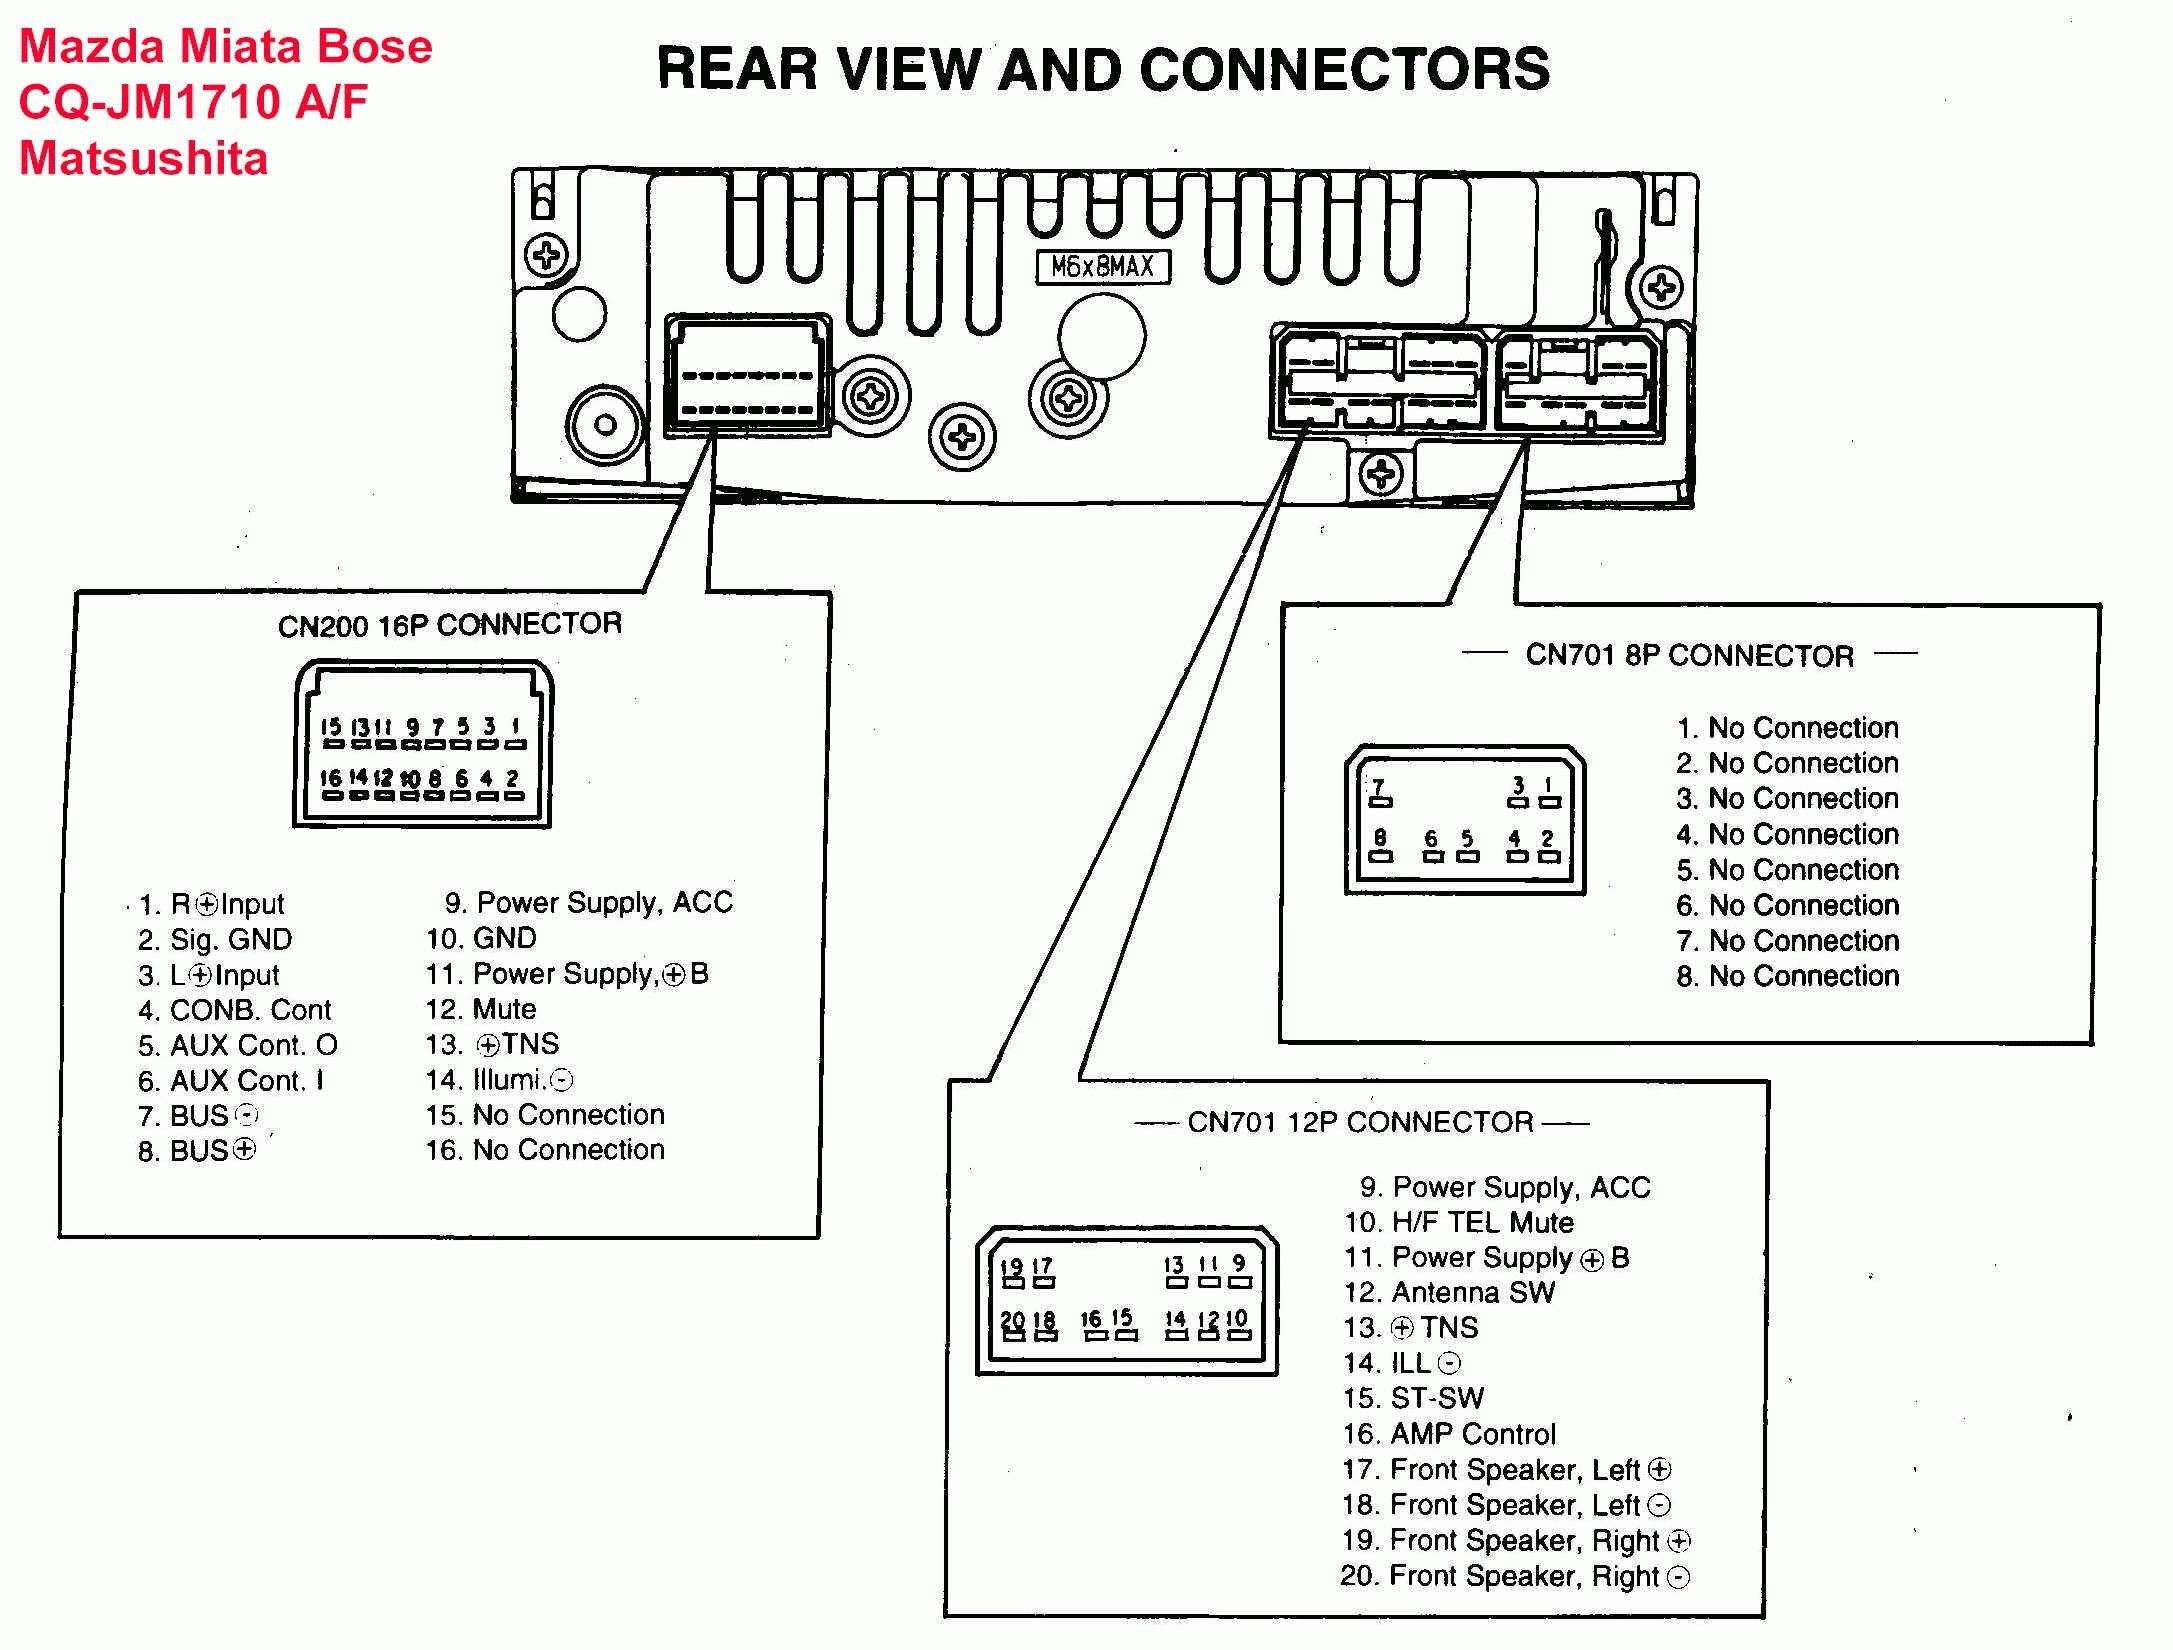 Wiring Diagram Head Unit Fujitsu Ten Awesome In 2020 Car Stereo Systems Trailer Wiring Diagram Car Stereo